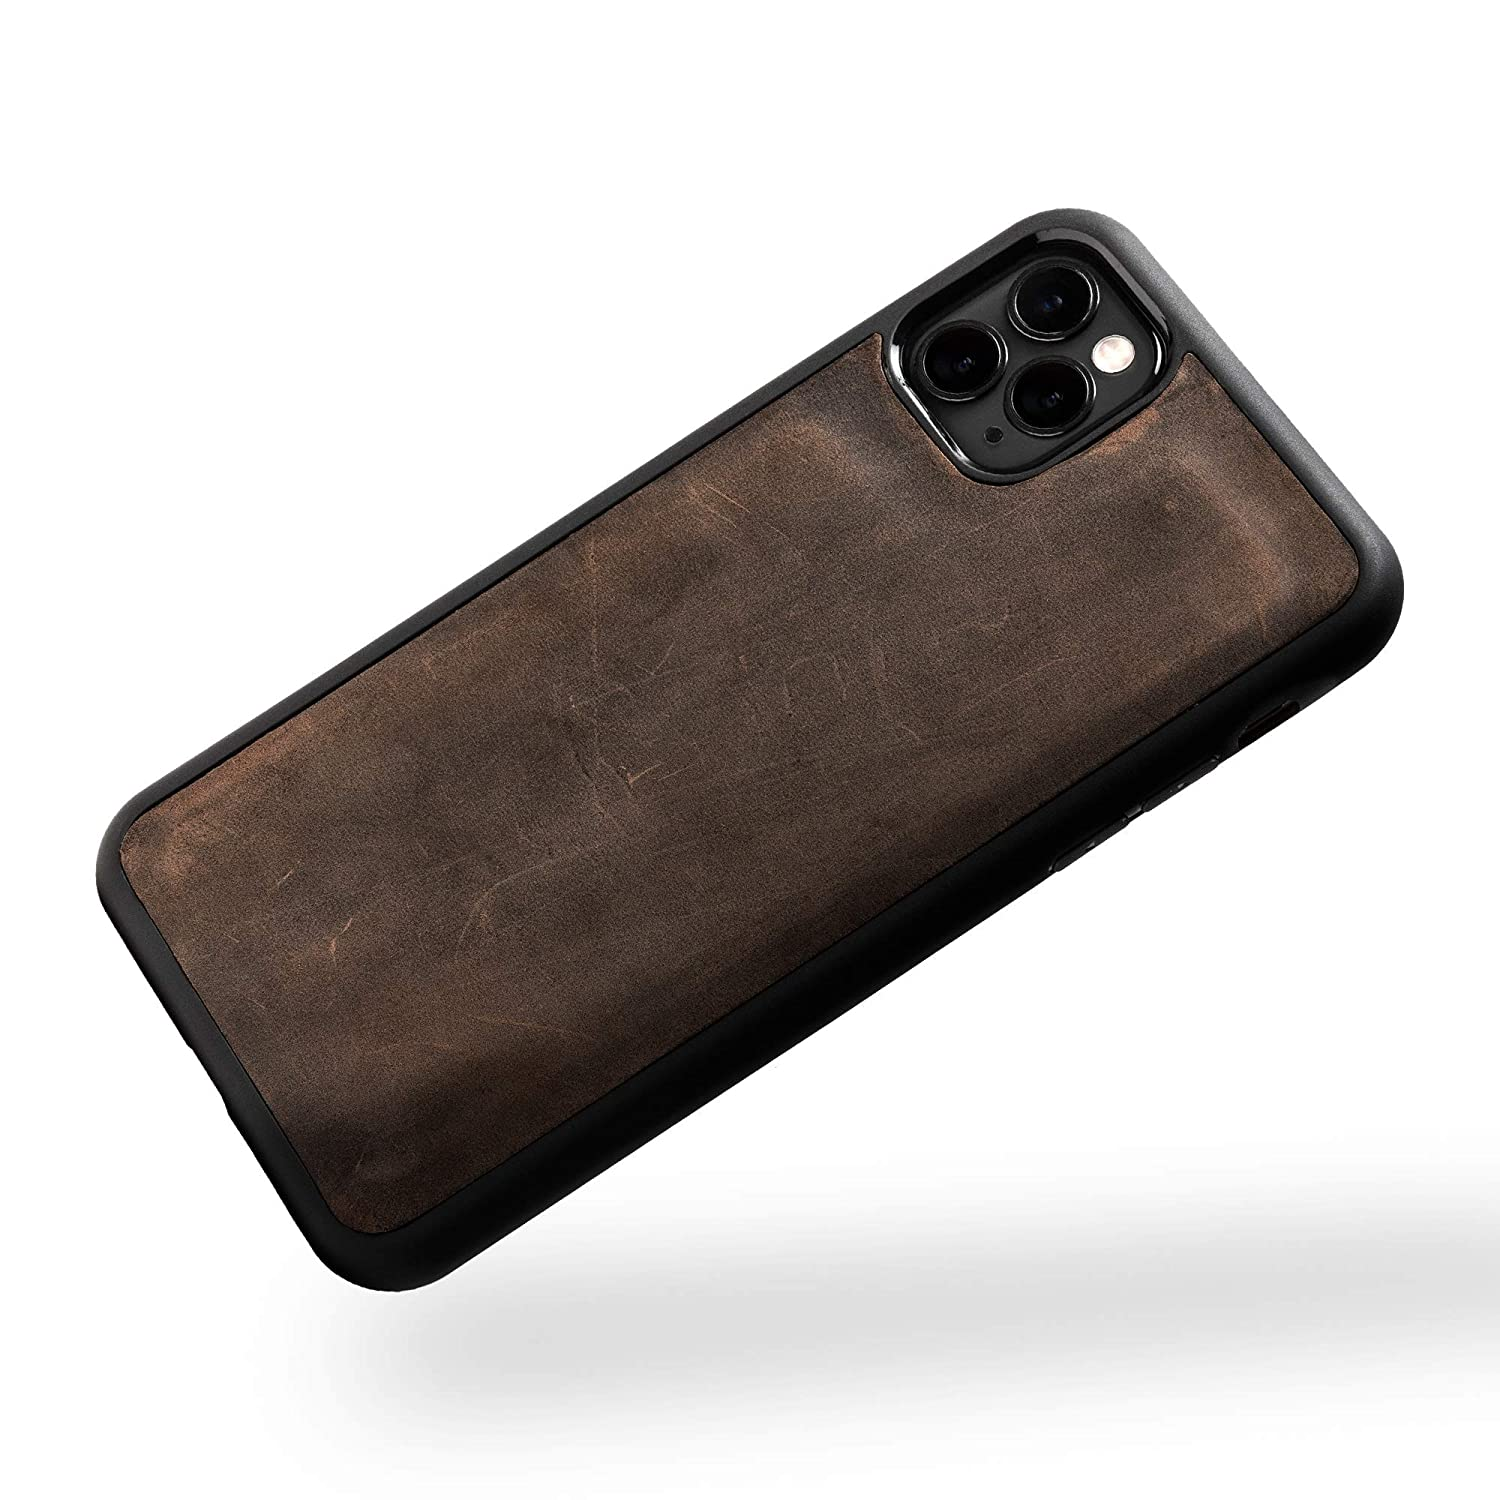 PEGAI Max 79% OFF Leatherback iPhone Opening large release sale Case Brown 8 PARION Chestnut